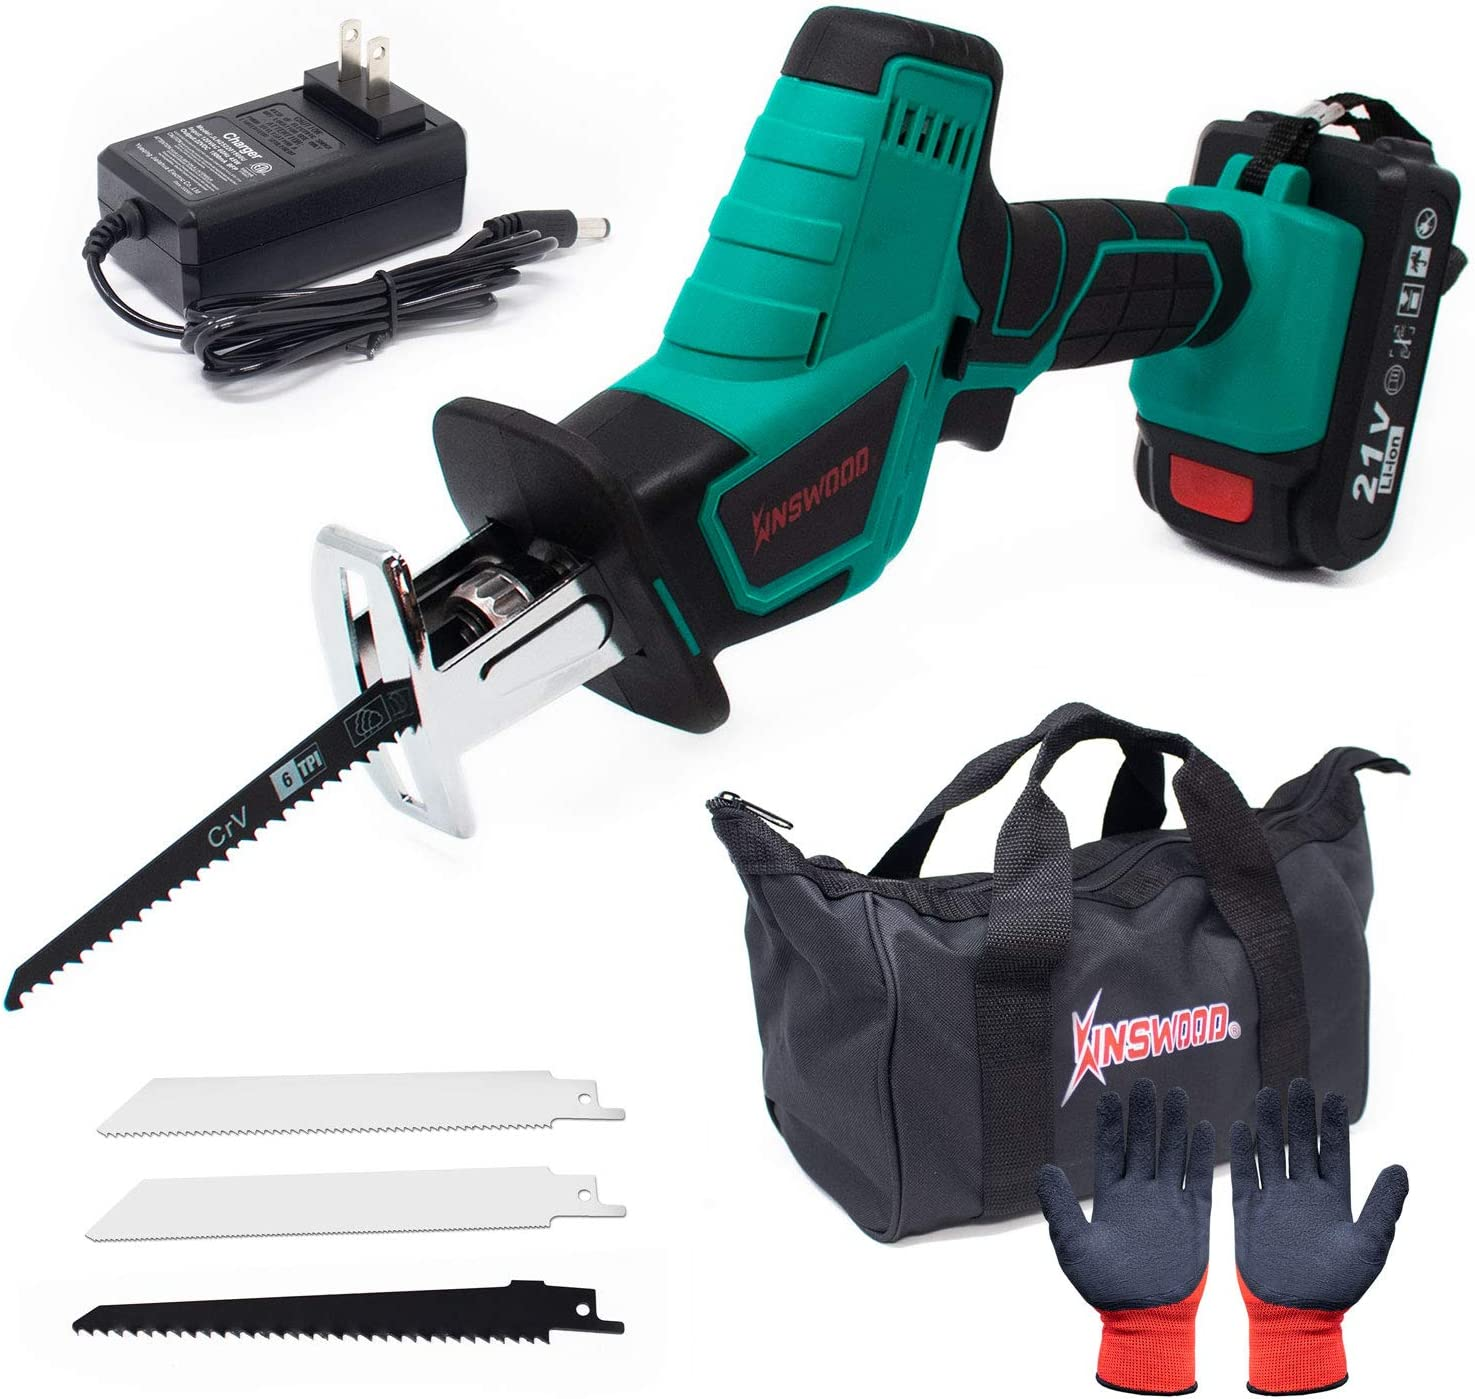 Kinswood 20V MAX 1.3A Reciprocating Saw w/Lithium-ion Battery Blades & ToolBag